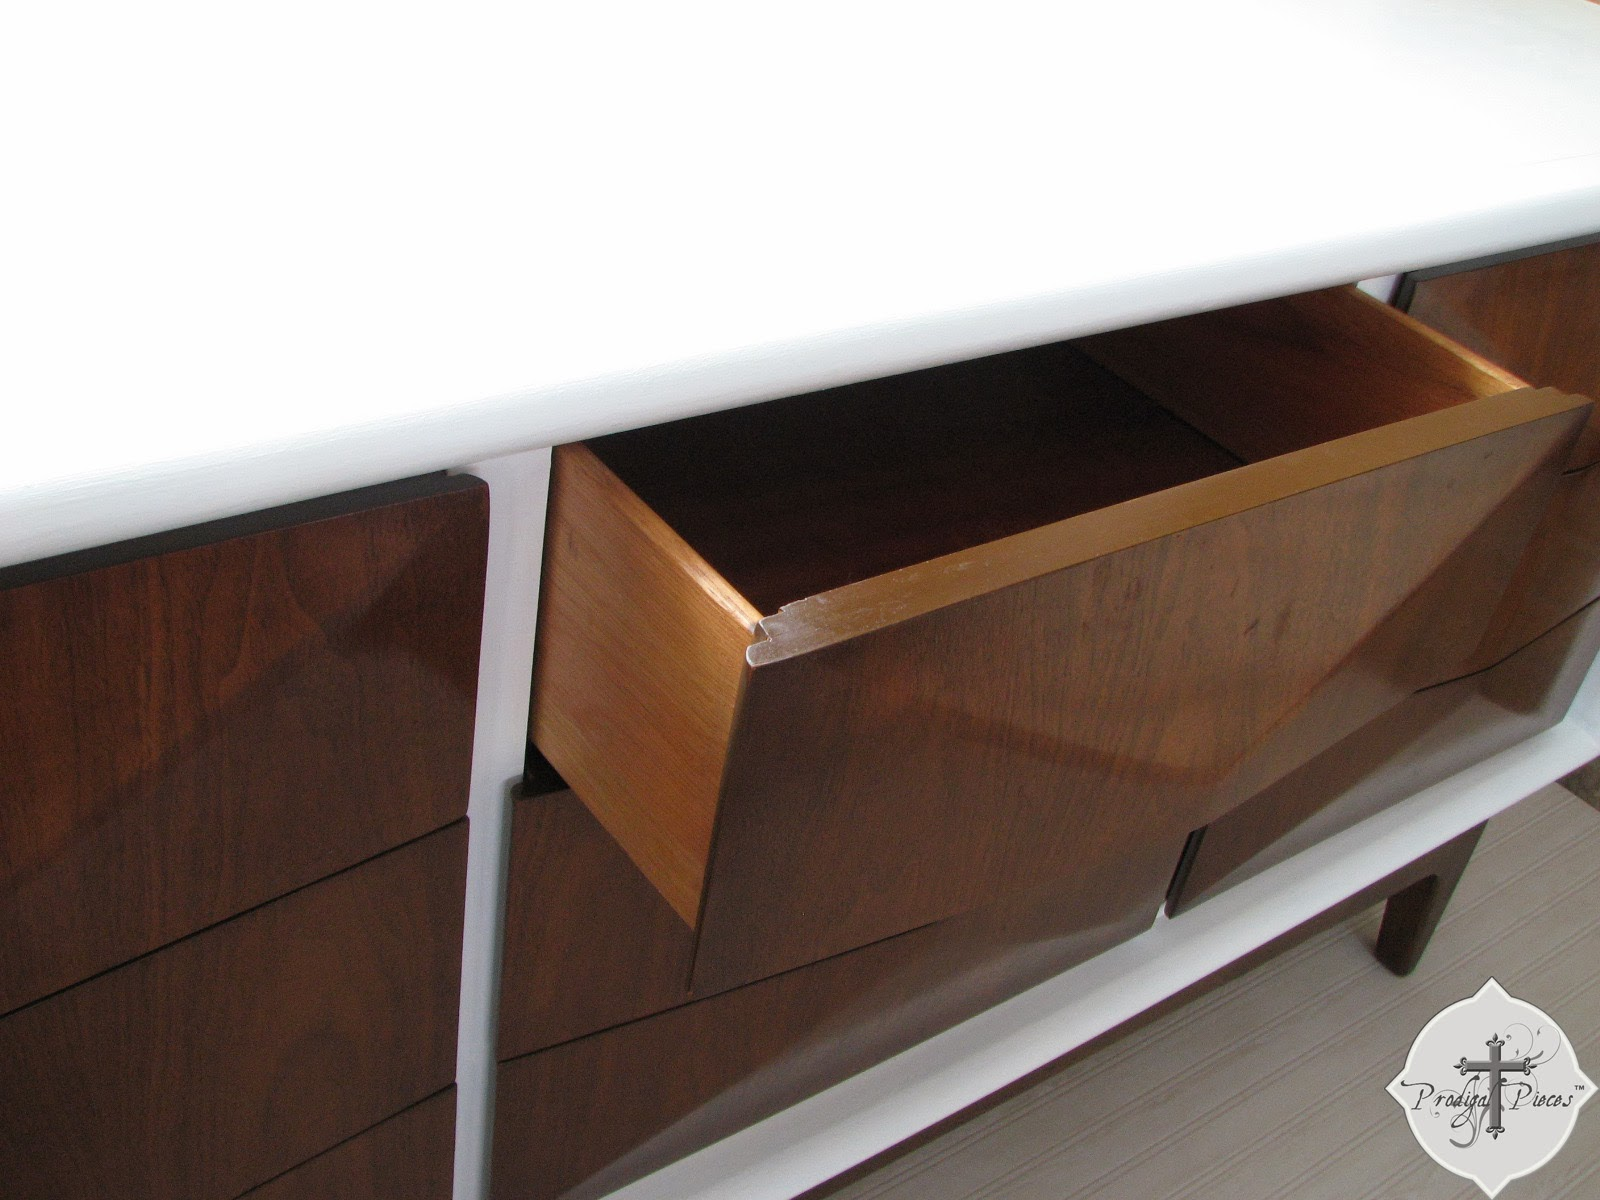 Vintage Mid-Century Modern Console Dresser by Prodigal Pieces